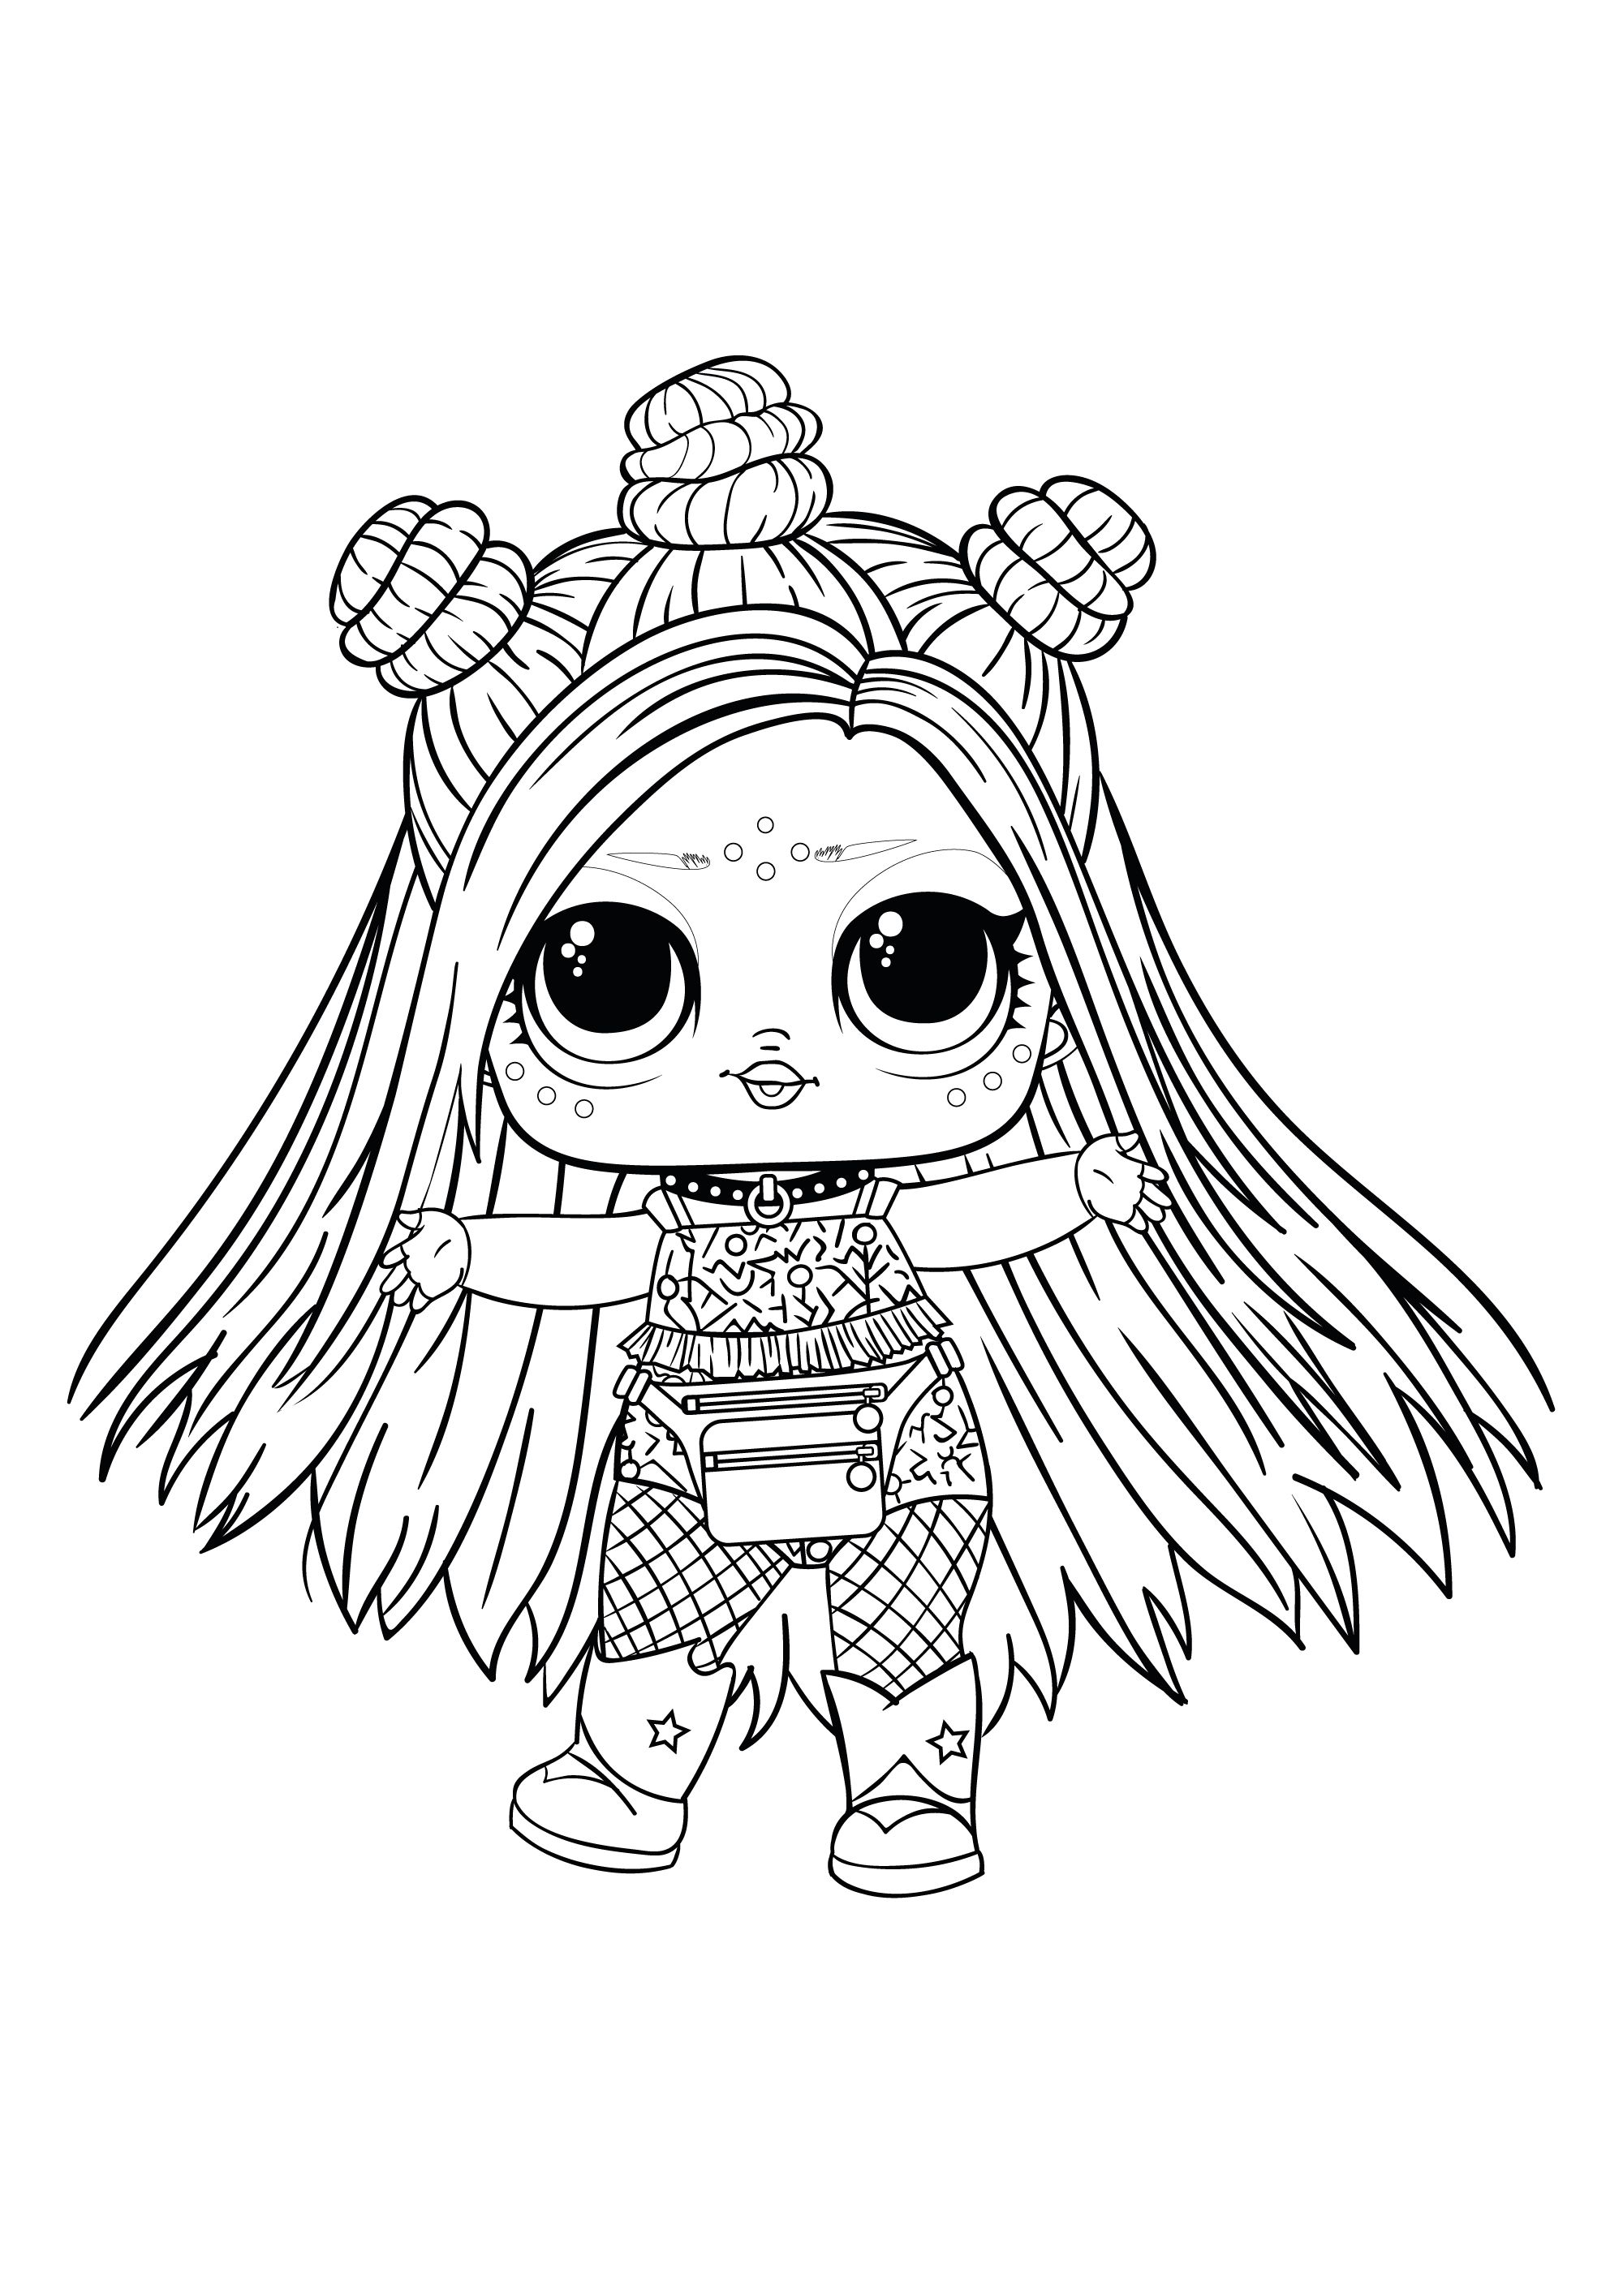 Coloring Pages Lol Surprise Hairgoals And Lol Surprise Boys Lolsdolls Bee Coloring Pages Unicorn Coloring Pages Lol Dolls